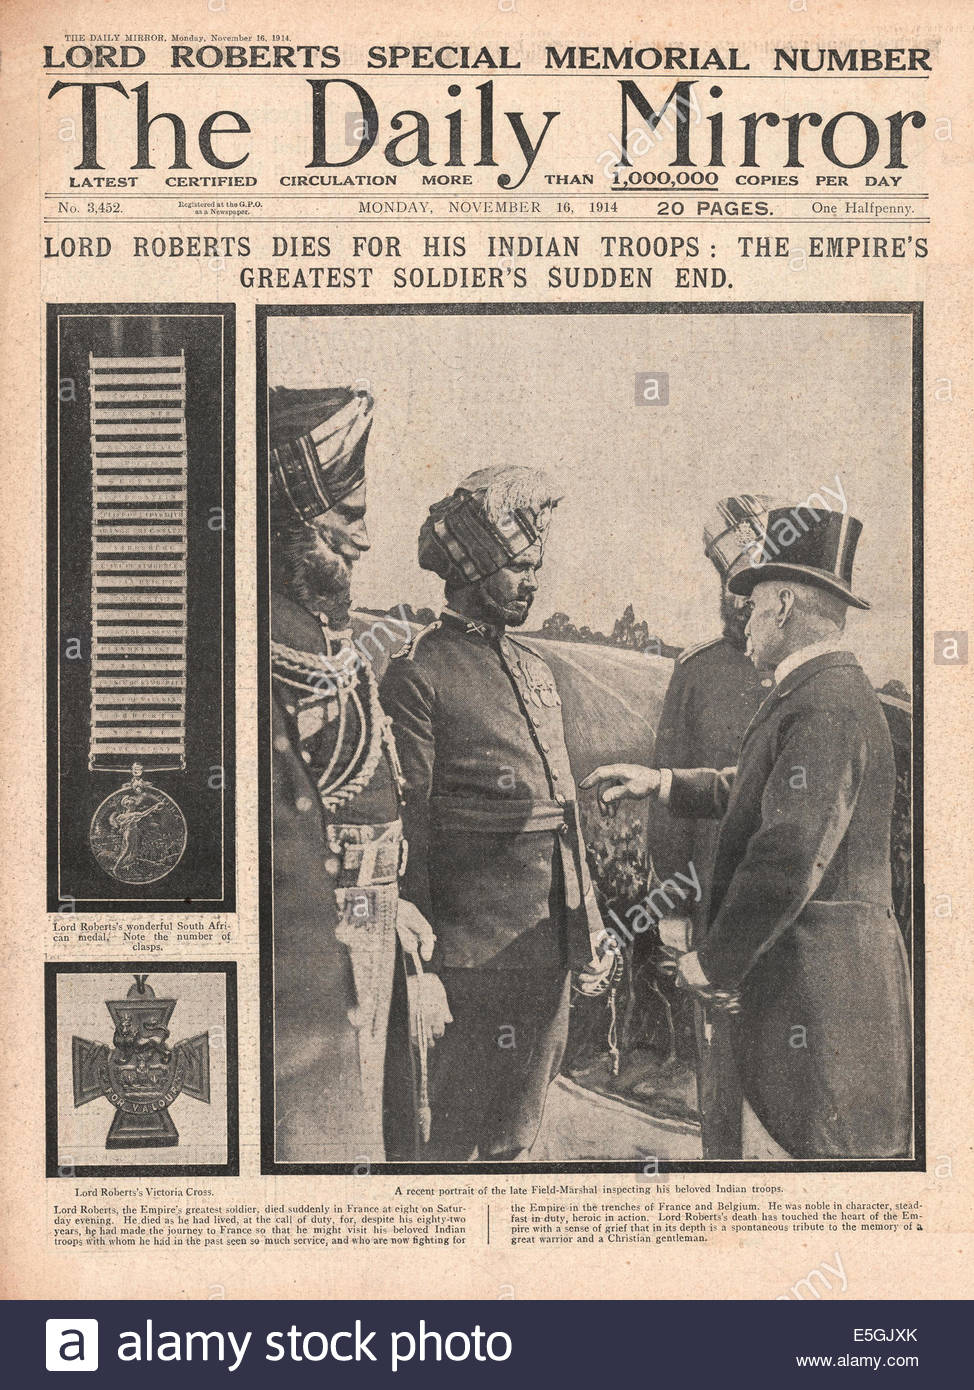 1914 Daily Mirror front page reporting Field Marshal Lord Roberts dies in France - Stock Image